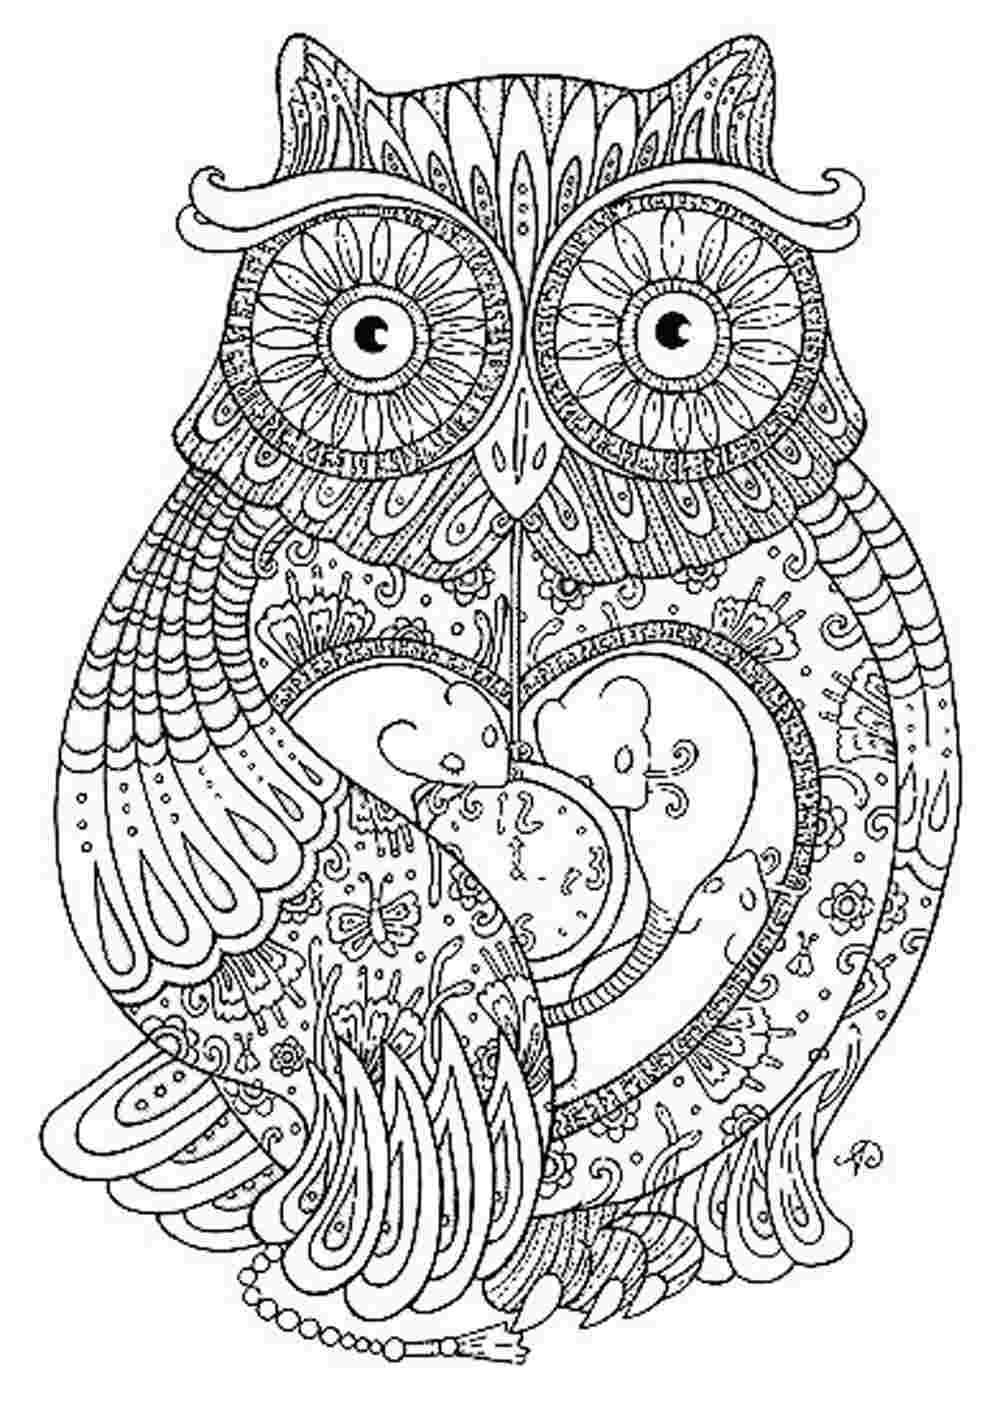 p sychology coloring pages - photo#43